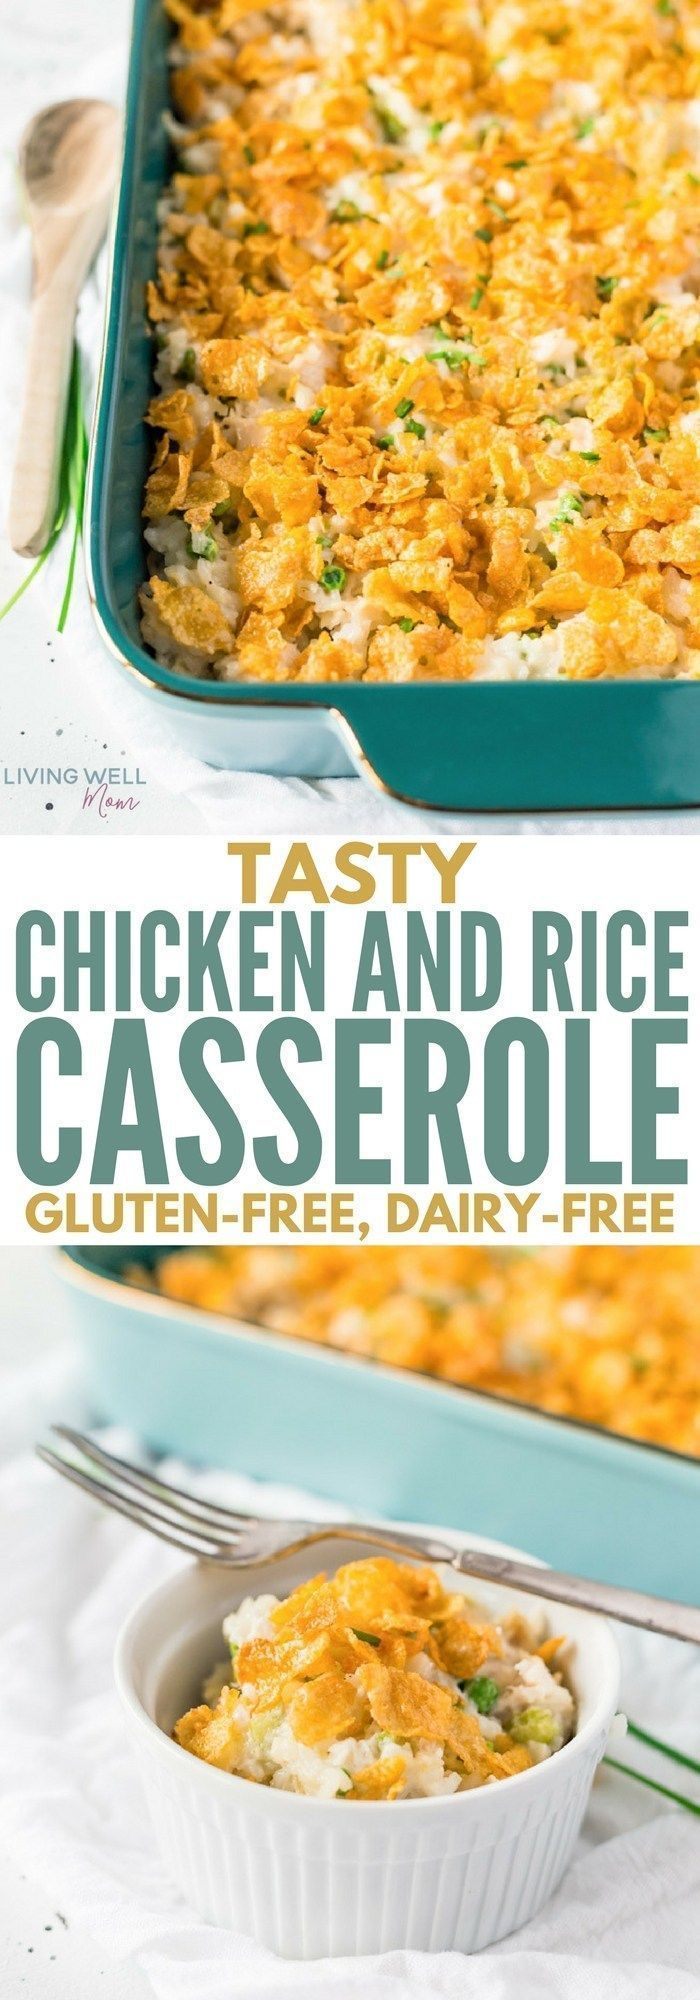 Tasty Chicken and Rice Casserole (Gluten-Free, Dairy-Free)